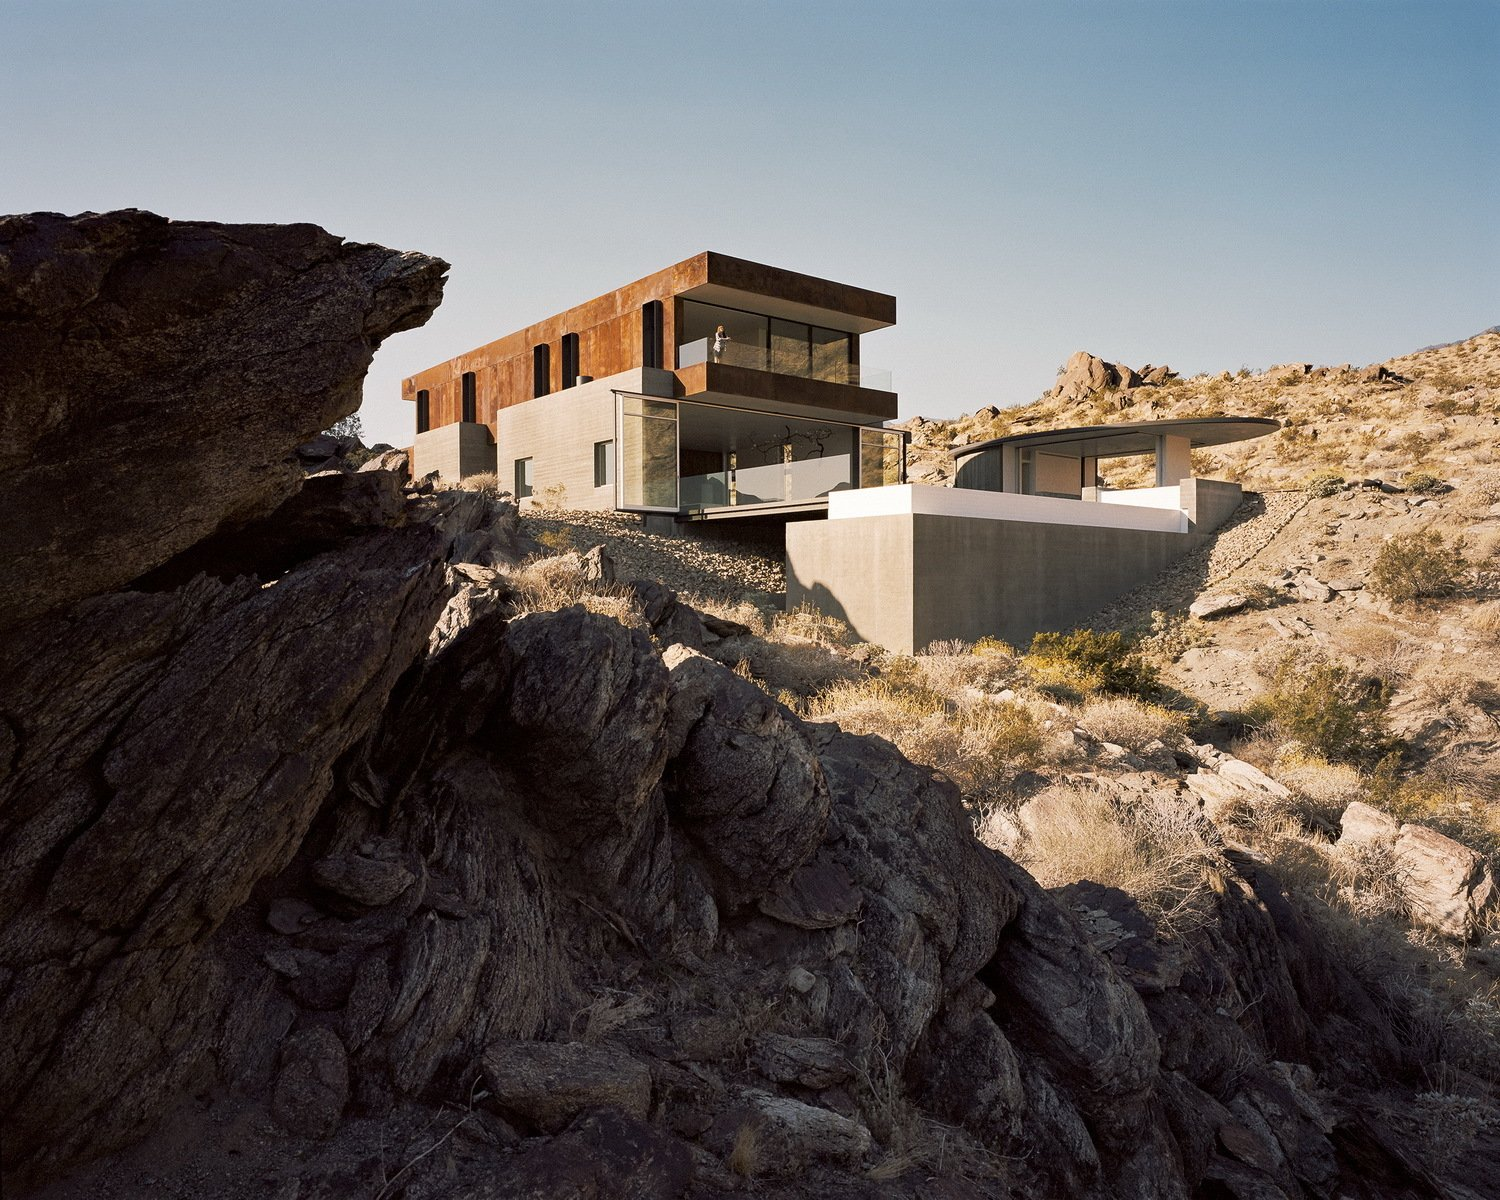 Outdoor, Desert, Concrete Patio, Porch, Deck, Back Yard, Shrubs, Boulders, Hardscapes, Infinity Pools, Tubs, Shower, and Slope  Ridge Mountain Residence by Ehrlich Yanai Rhee Chaney Architects